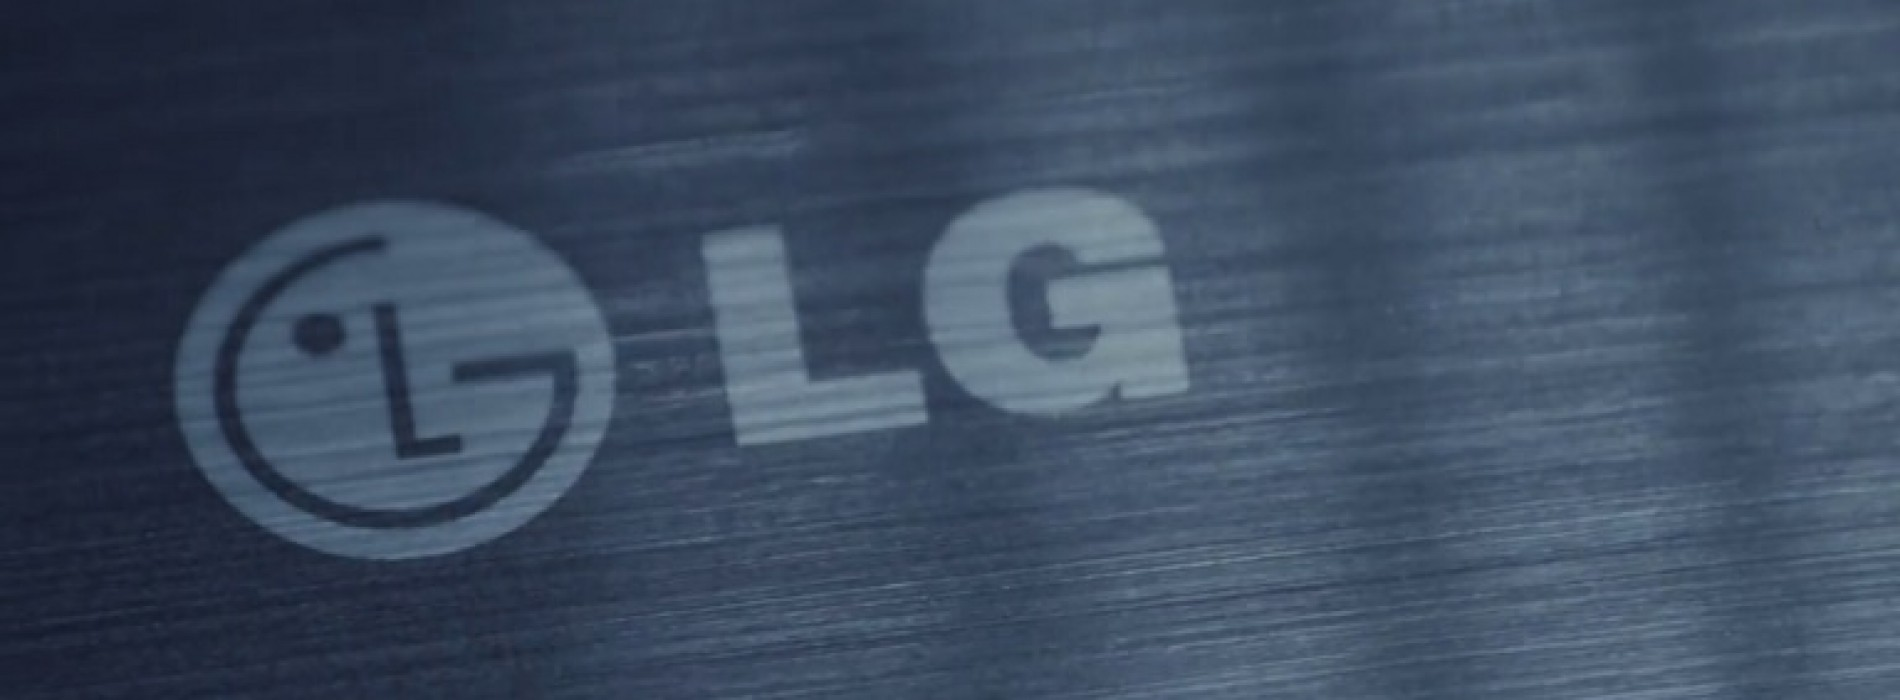 A metal LG G3 would've cost $300 more than the current G3